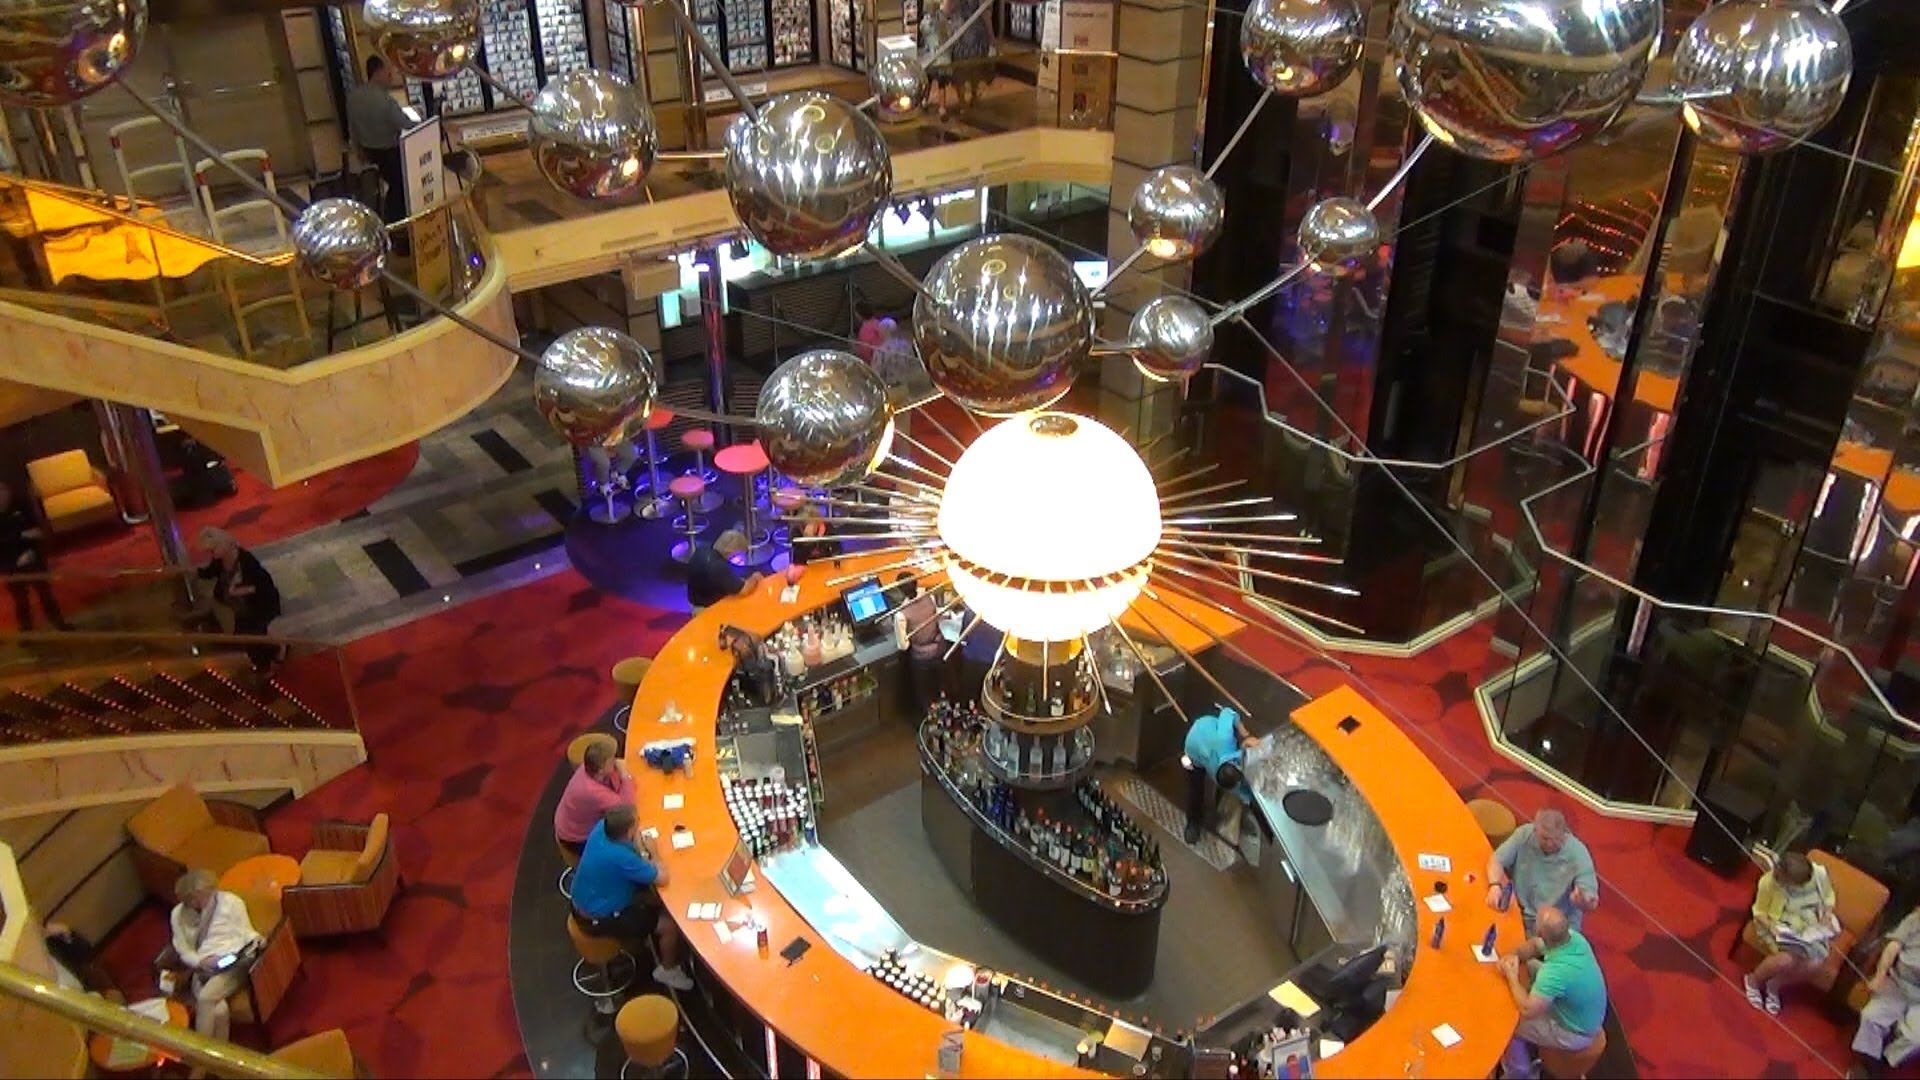 Video Overview Part 1 Carnival Sunshine Including Lobby Lounges